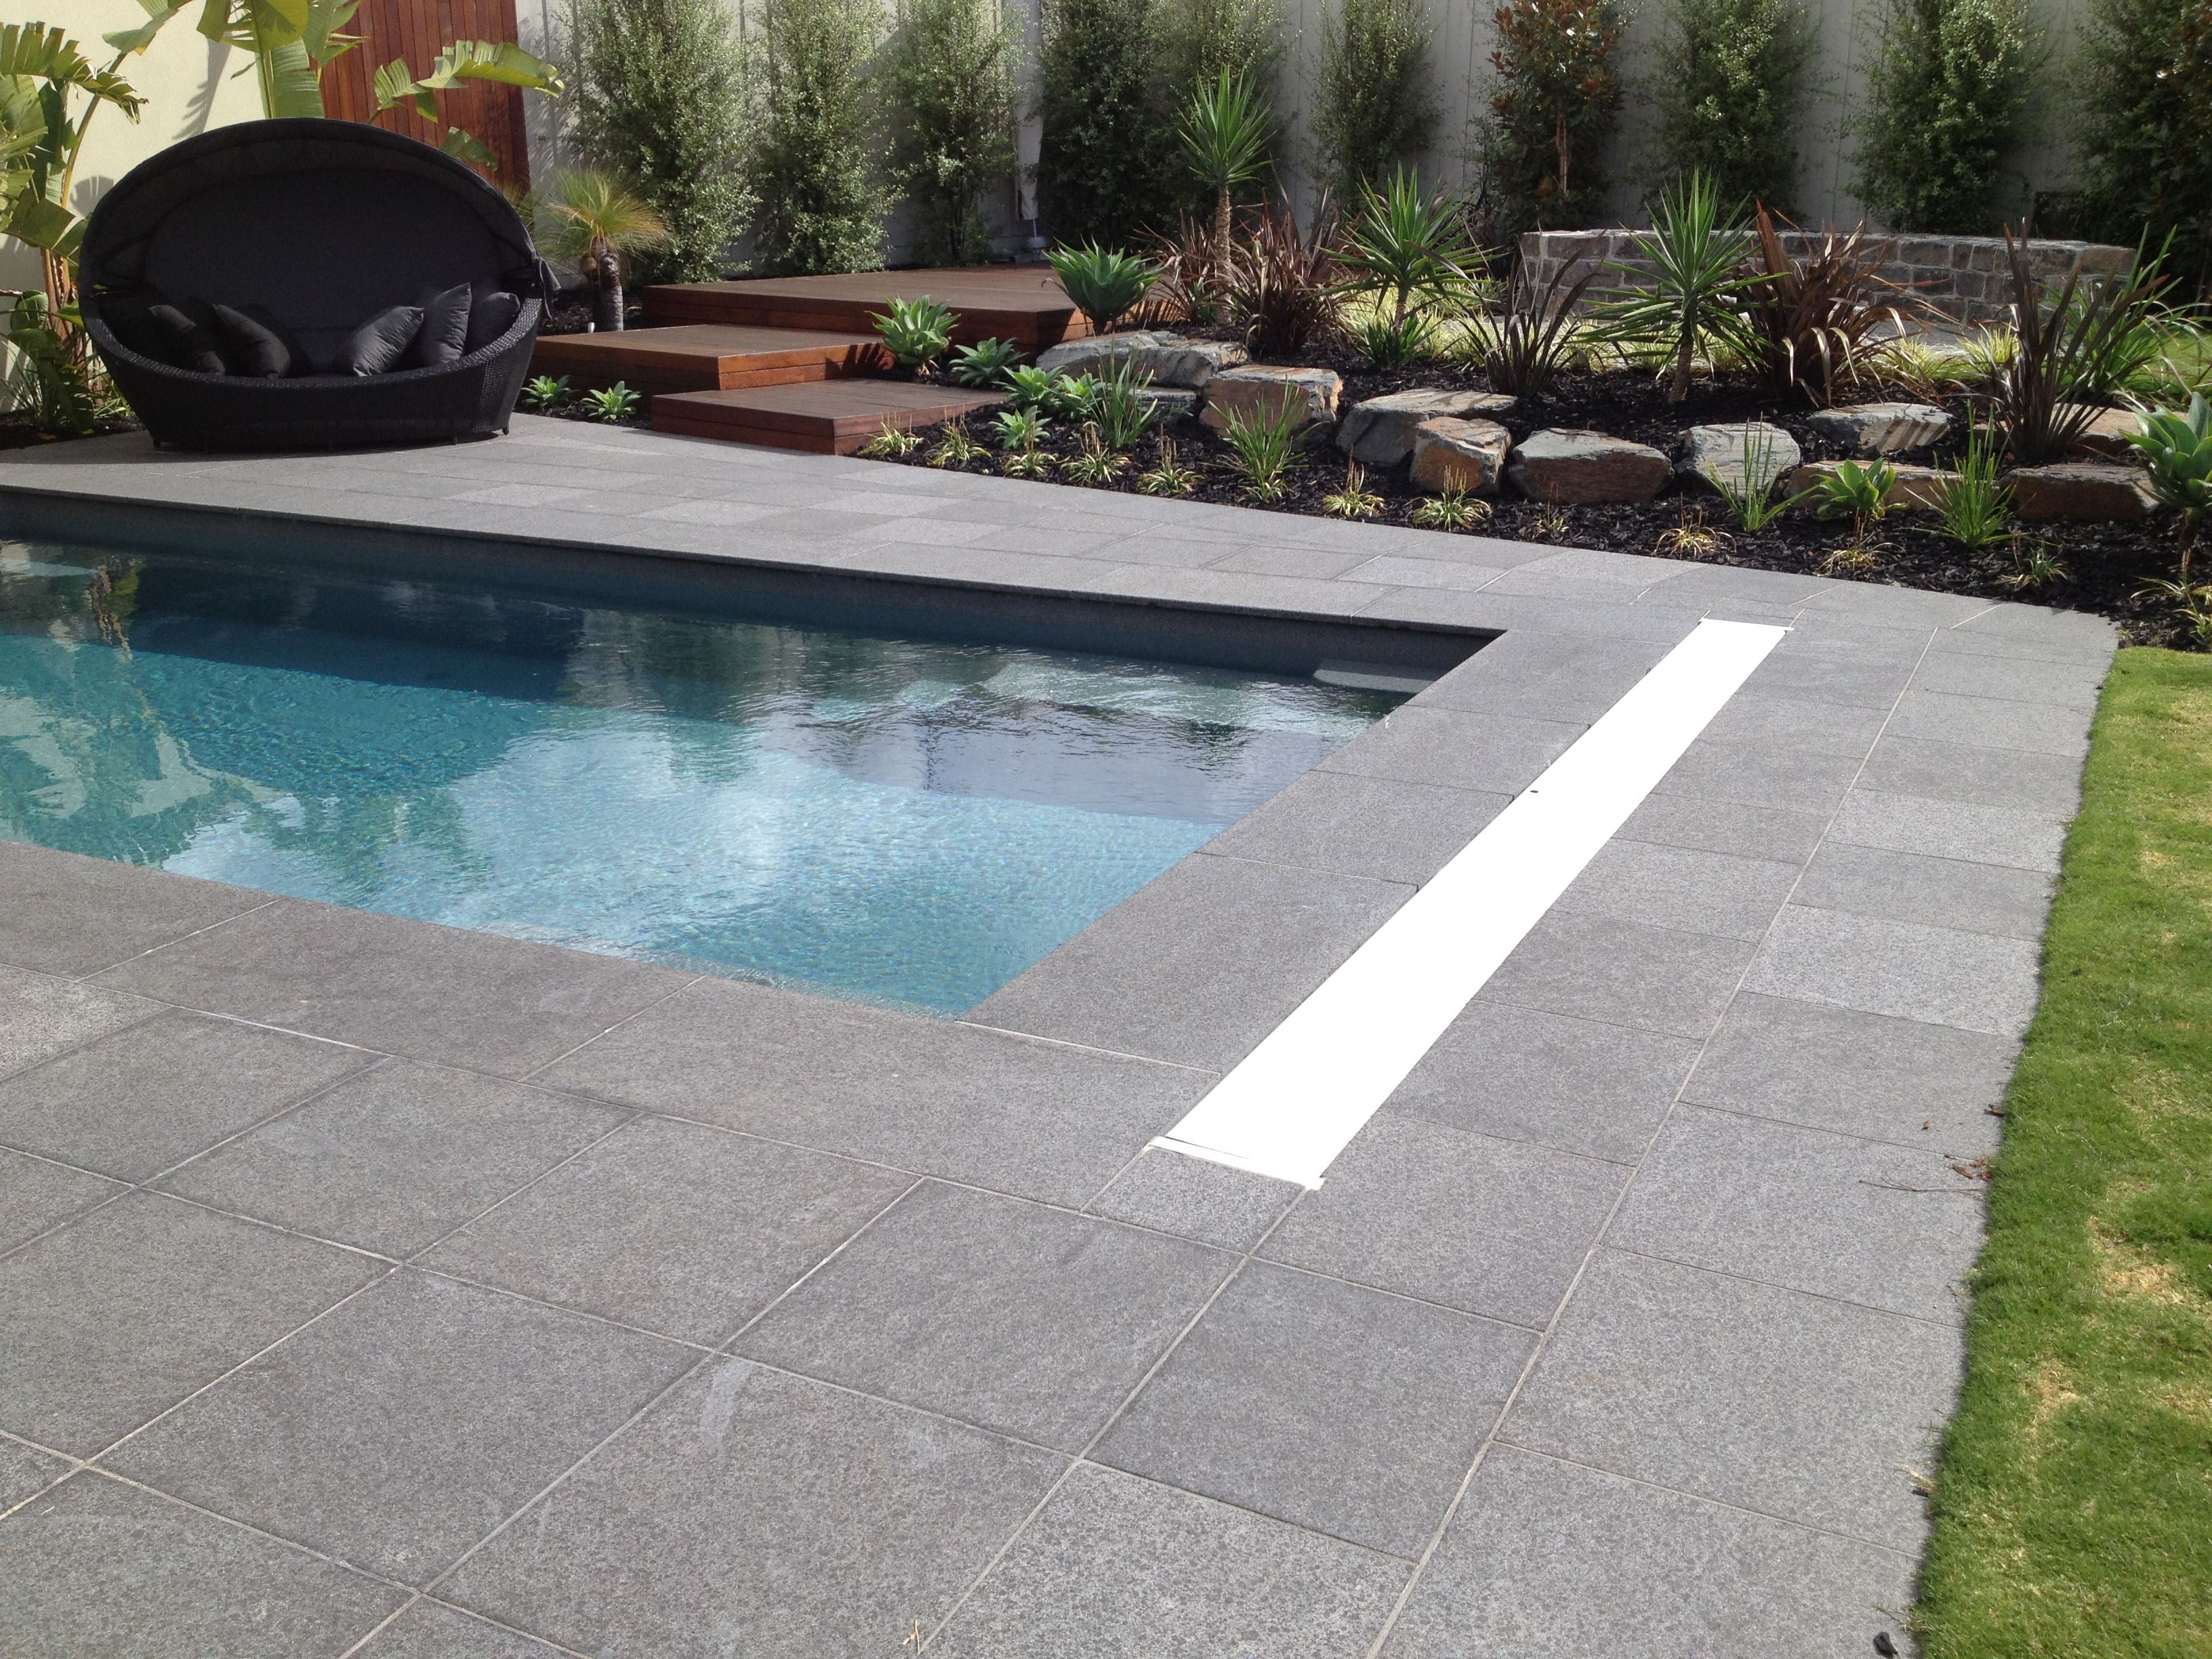 Sunbather Downunder Hidden Pool Cover Roller System Hide Your Pool Cover Neatly And Easily